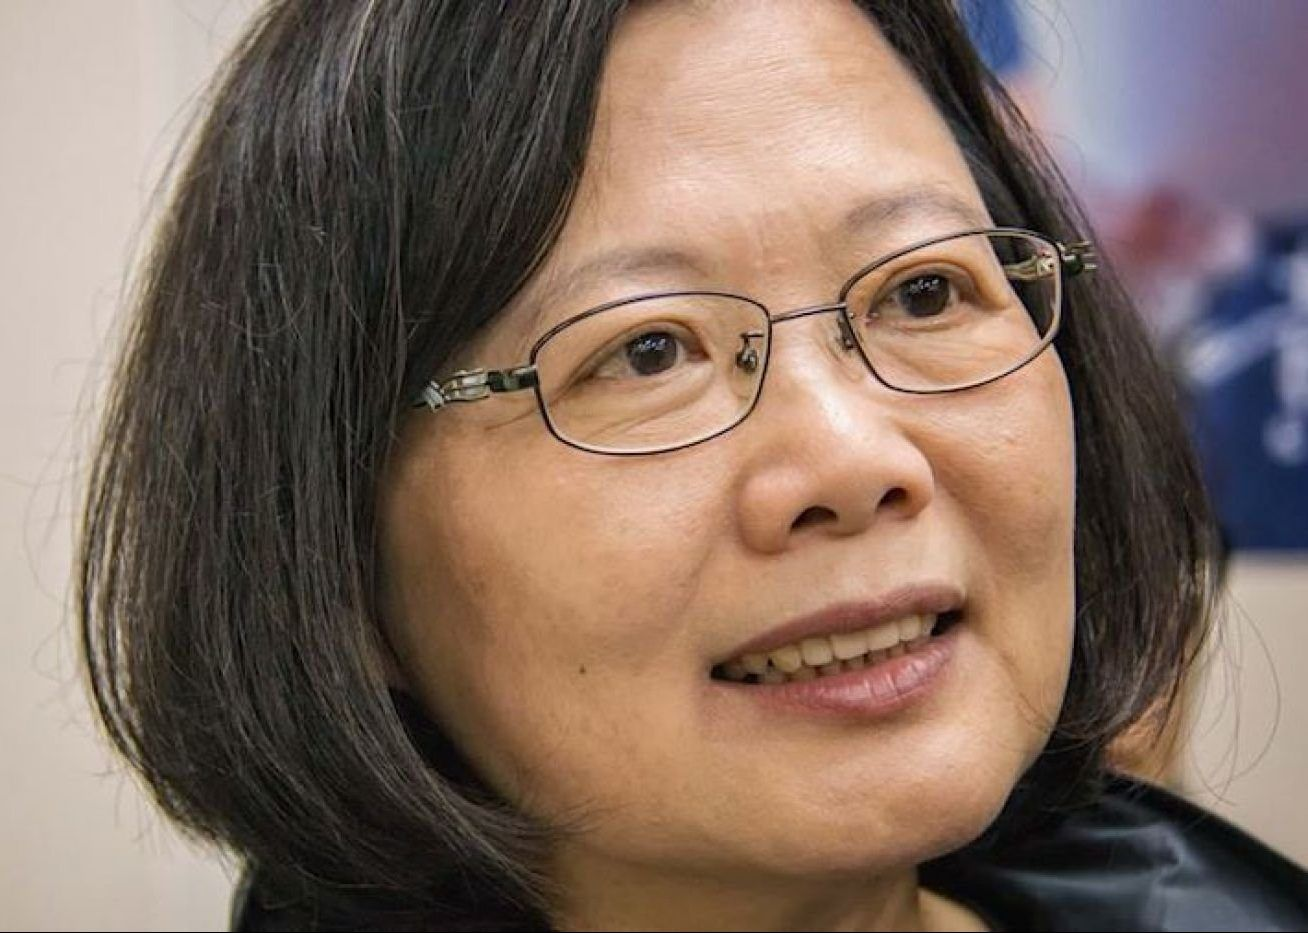 """Share or Comment on: """"TAIWAN: Tsai Ing-wen Inauguration Angers China"""" - http://www.politicoscope.com/wp-content/uploads/2016/01/Taiwan-Headline-News-Story-Tsai-Ing-Wen-e1461239906654.jpg - Tsai Ing-wen takes office on May 20.  on Politicoscope: Politics - http://www.politicoscope.com/2016/04/21/taiwan-tsai-ing-wen-inauguration-angers-china/."""